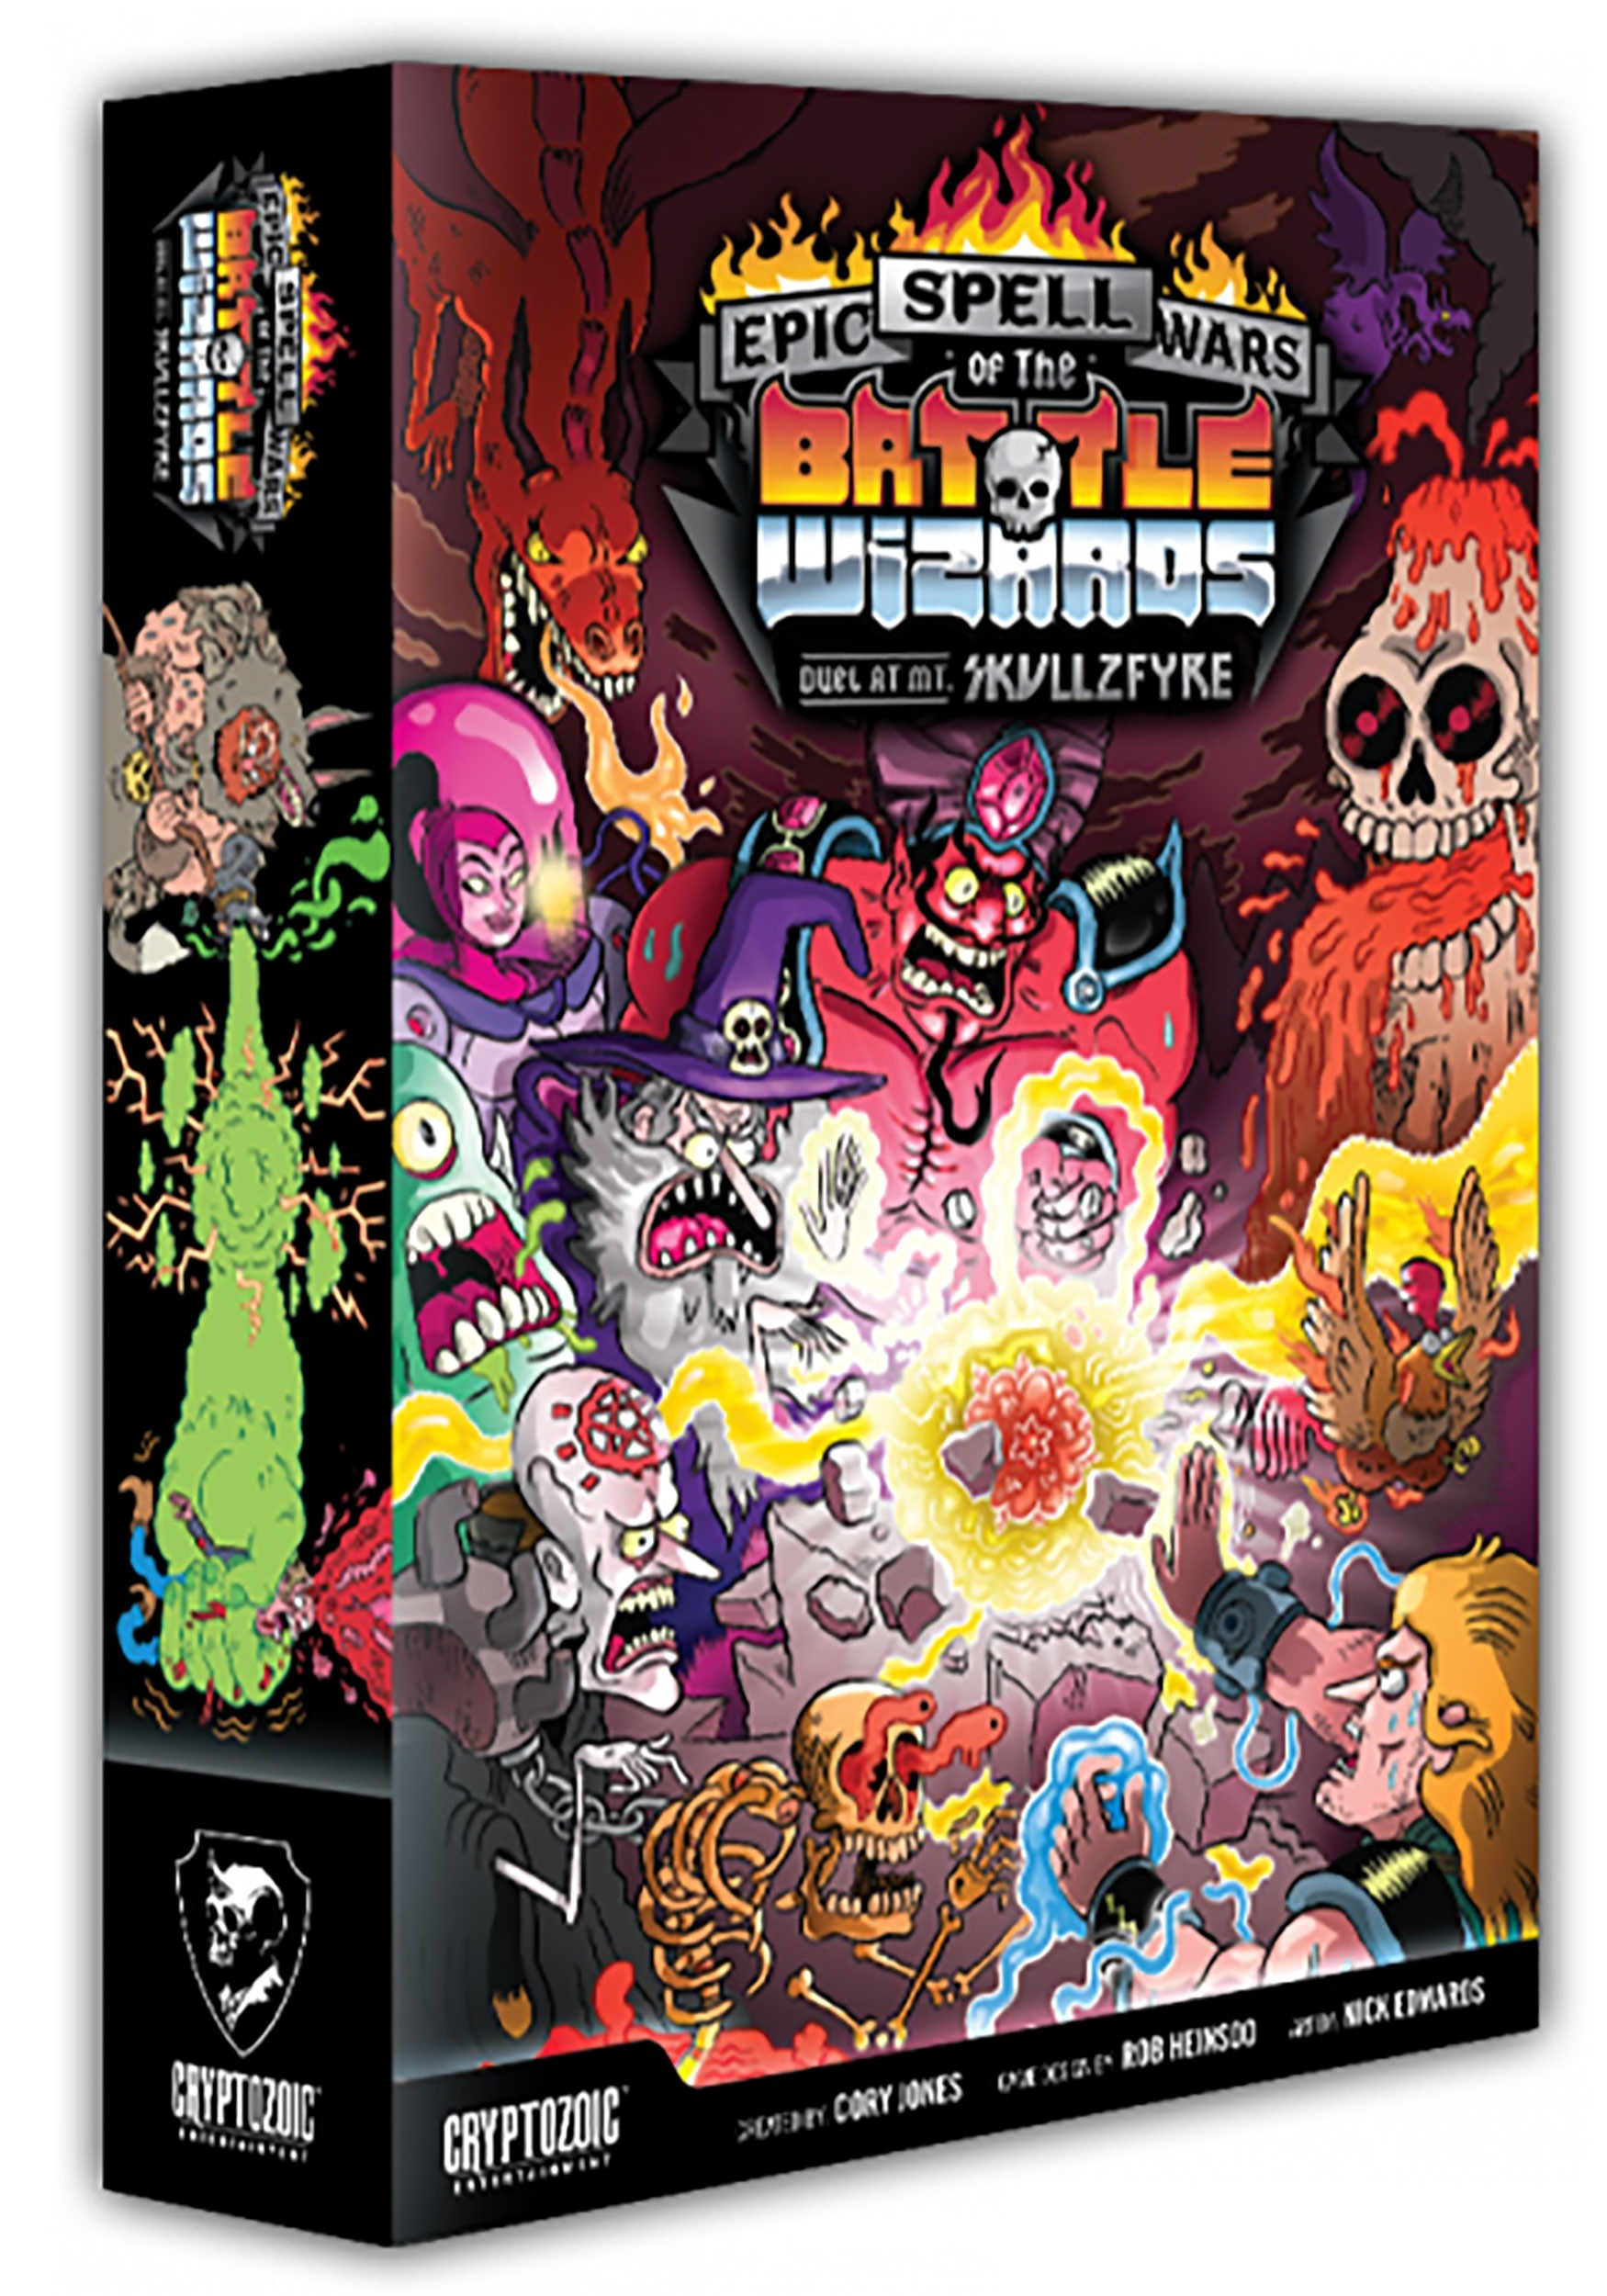 Duel at Mount Skullzfyre: Epic Spell Wars of the Battle Wizards Game